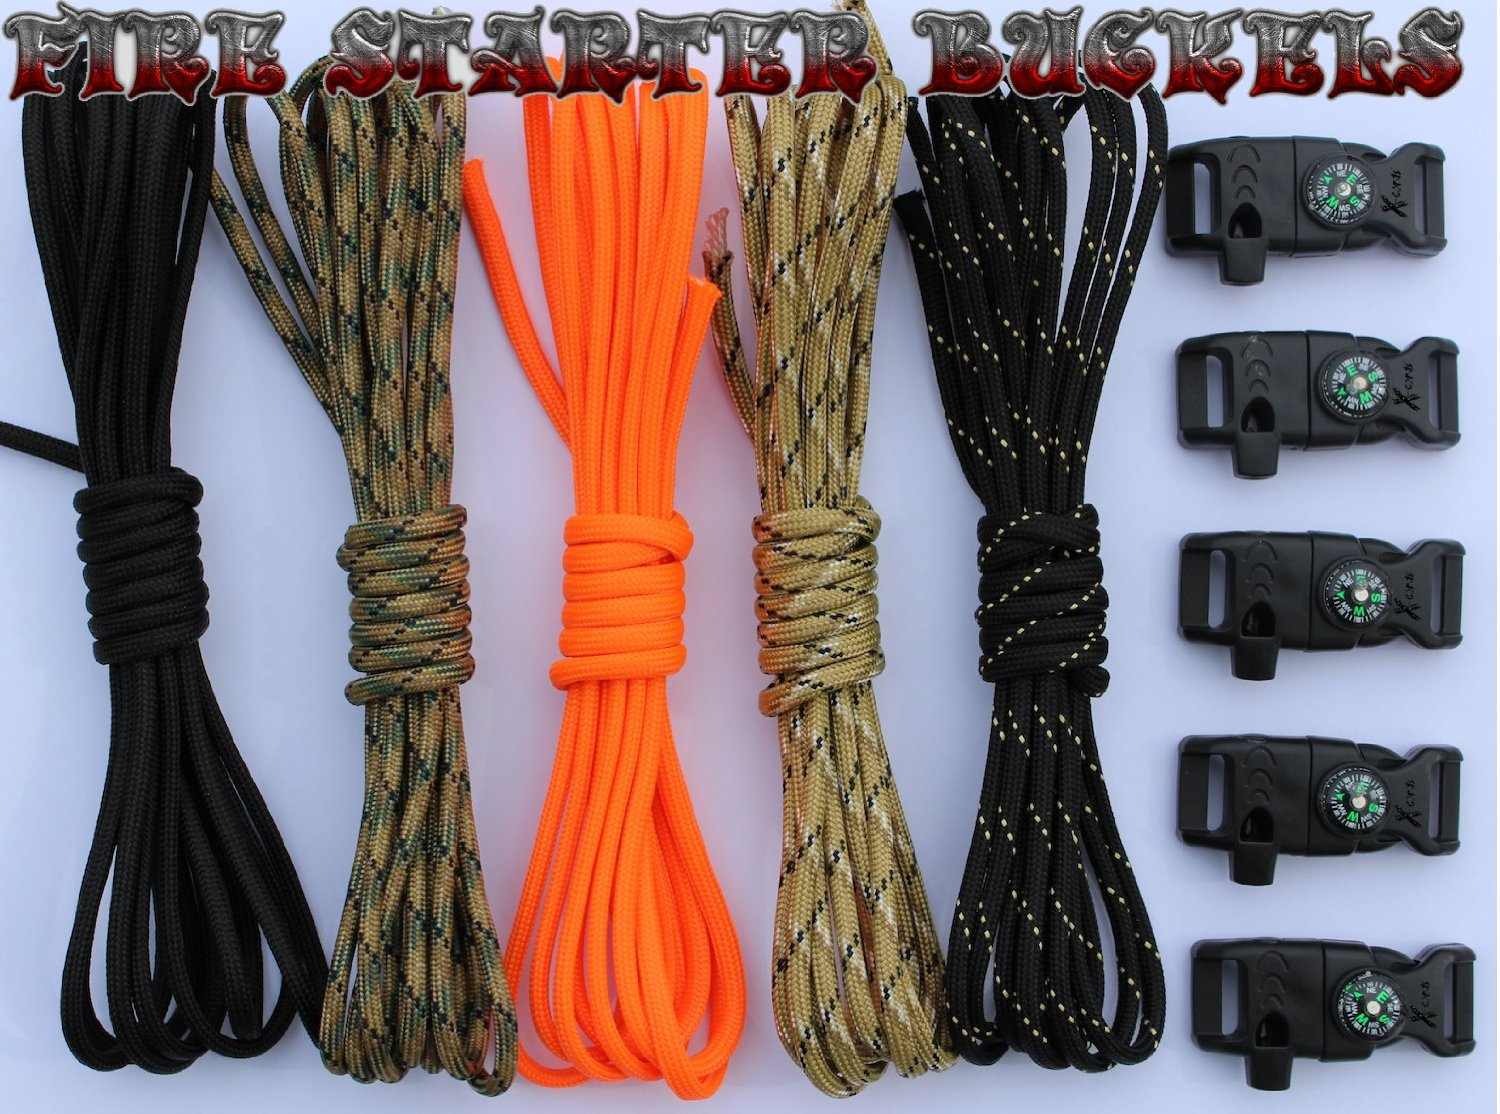 X-cords Paracord Bracelet Kit with Fire Starter Buckle-compass-buckles-whistle Buckles and Instructions A Prepper Must Have